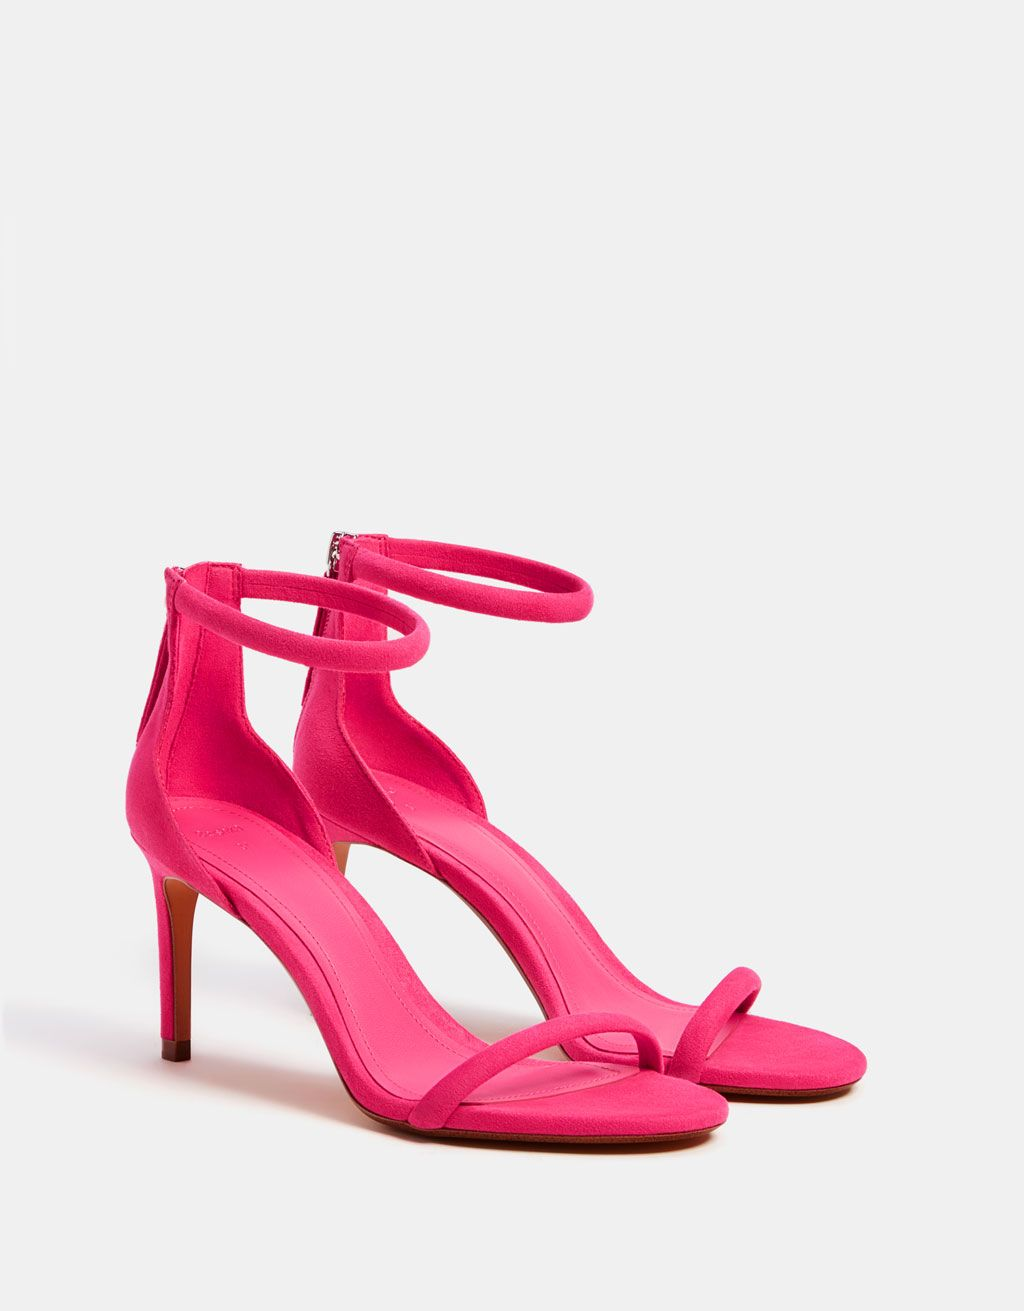 FUCHSIA BRIGHT PINK BARELY THERE STRAPPY SANDALS PEEP TOES HIGH HEELS SHOES SIZE